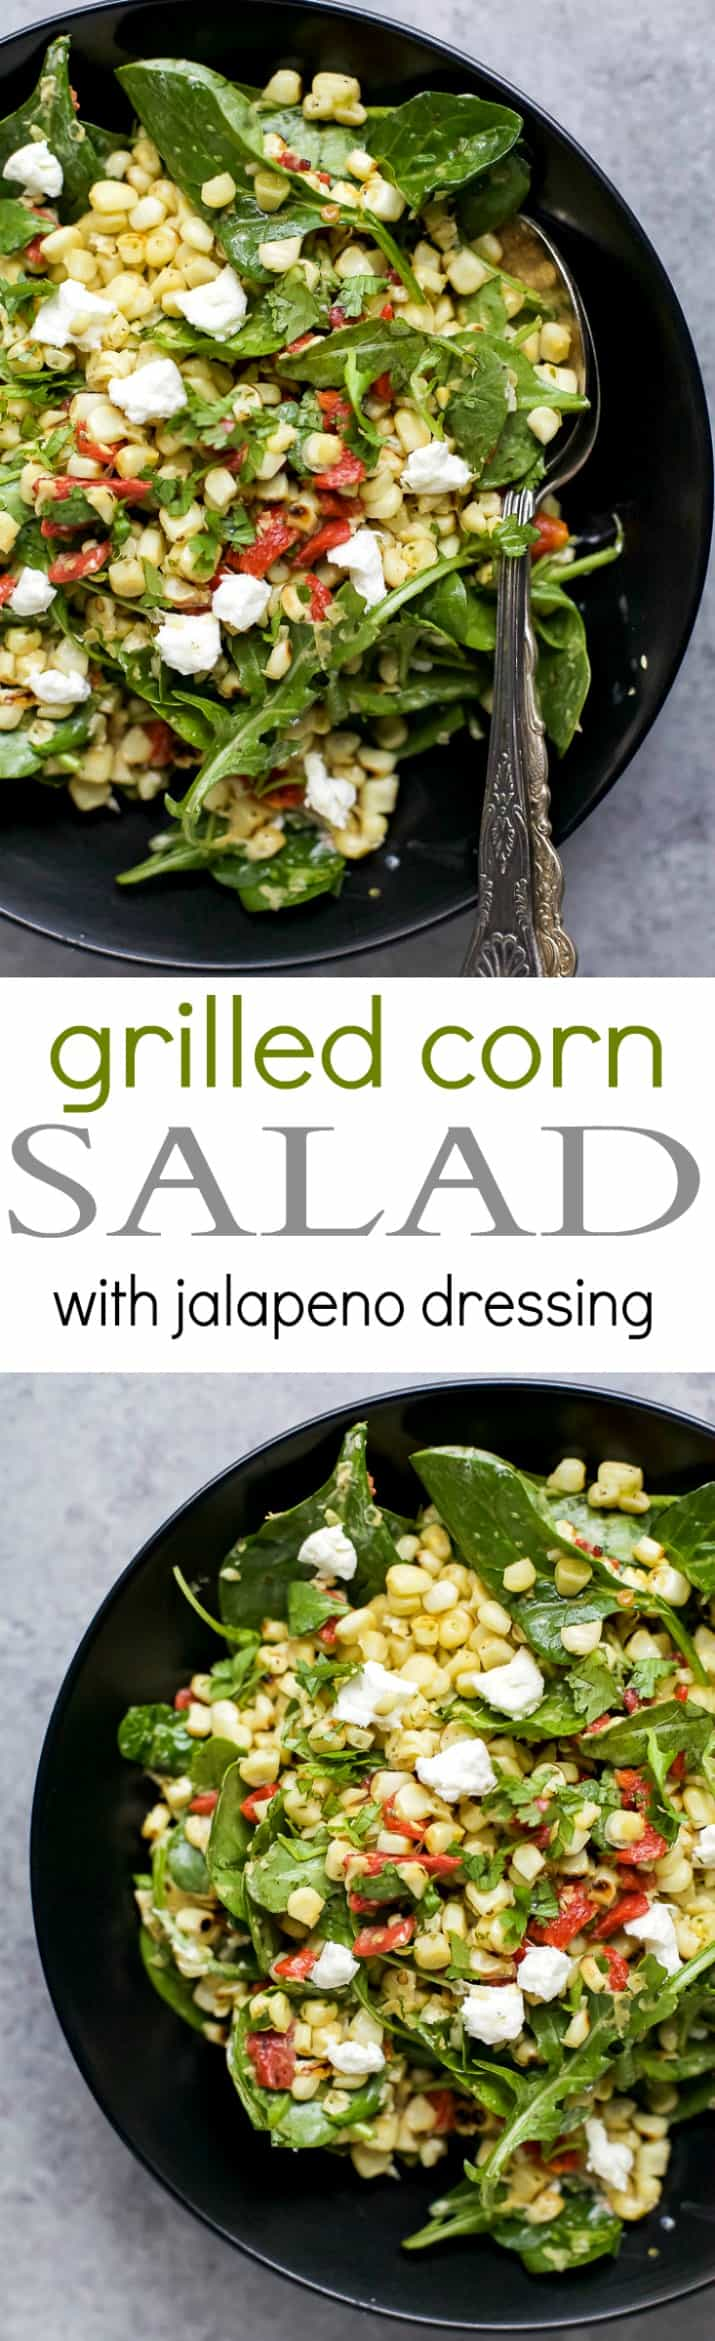 Recipe collage for Grilled Corn Salad with Jalapeno Dressings